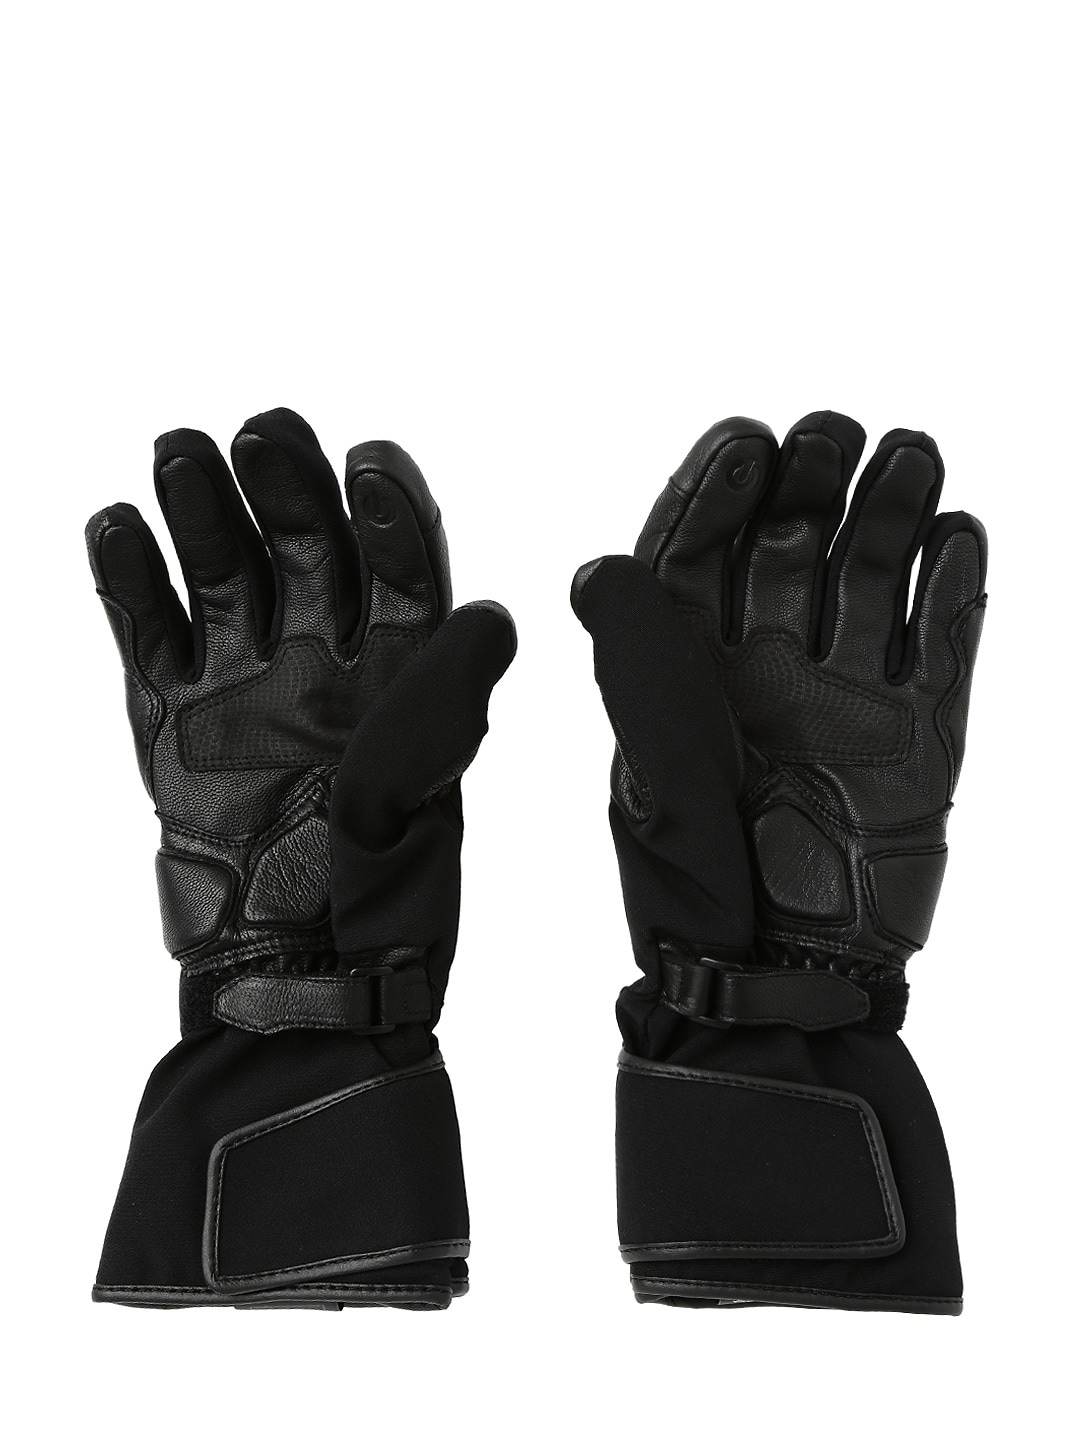 Motorcycle leather gloves india - Motorcycle Leather Gloves India 47